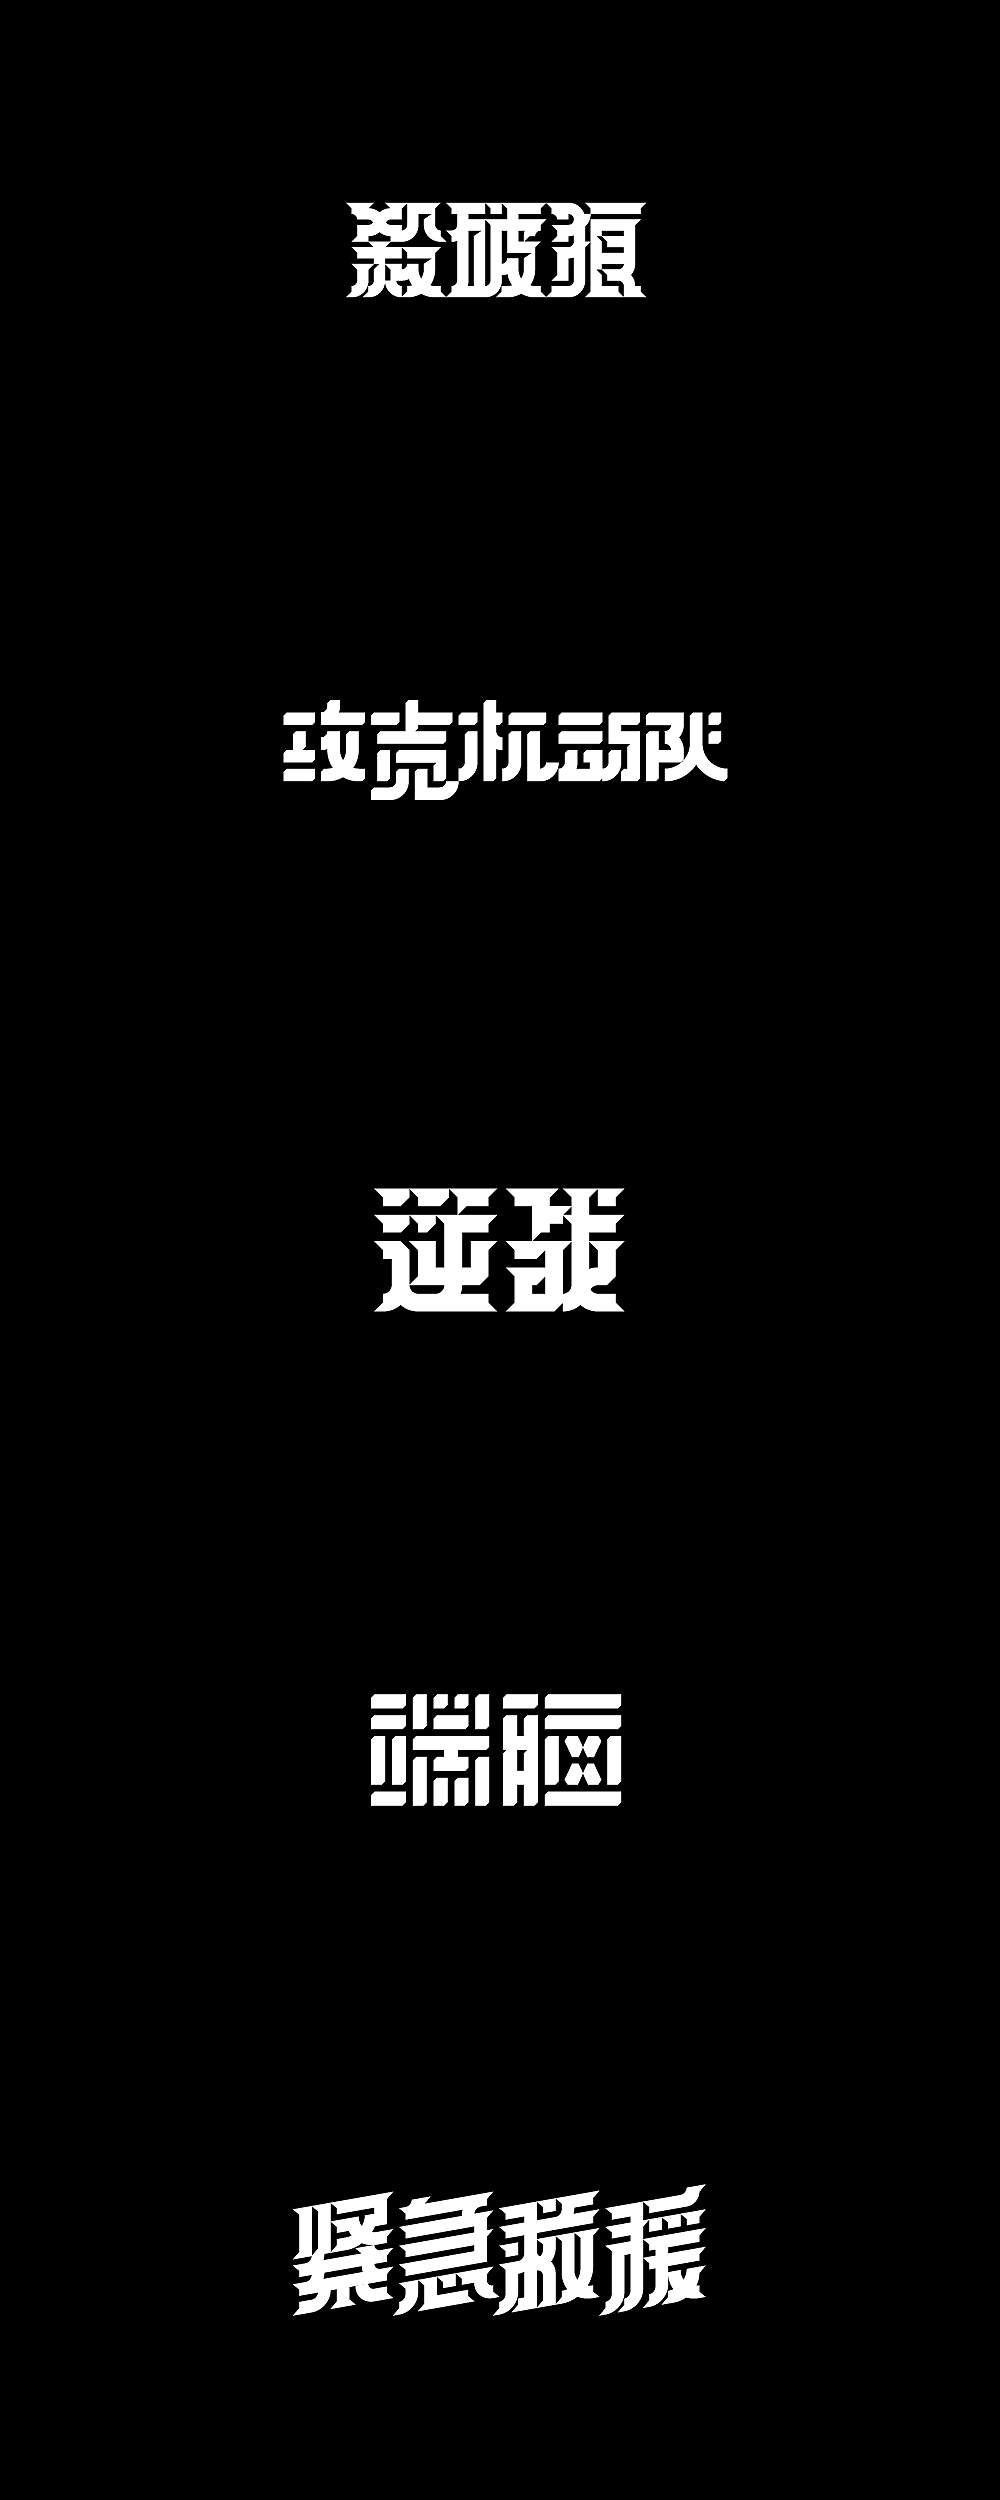 Chinese Orthographic Font-Sometimes too serious fonts are popular